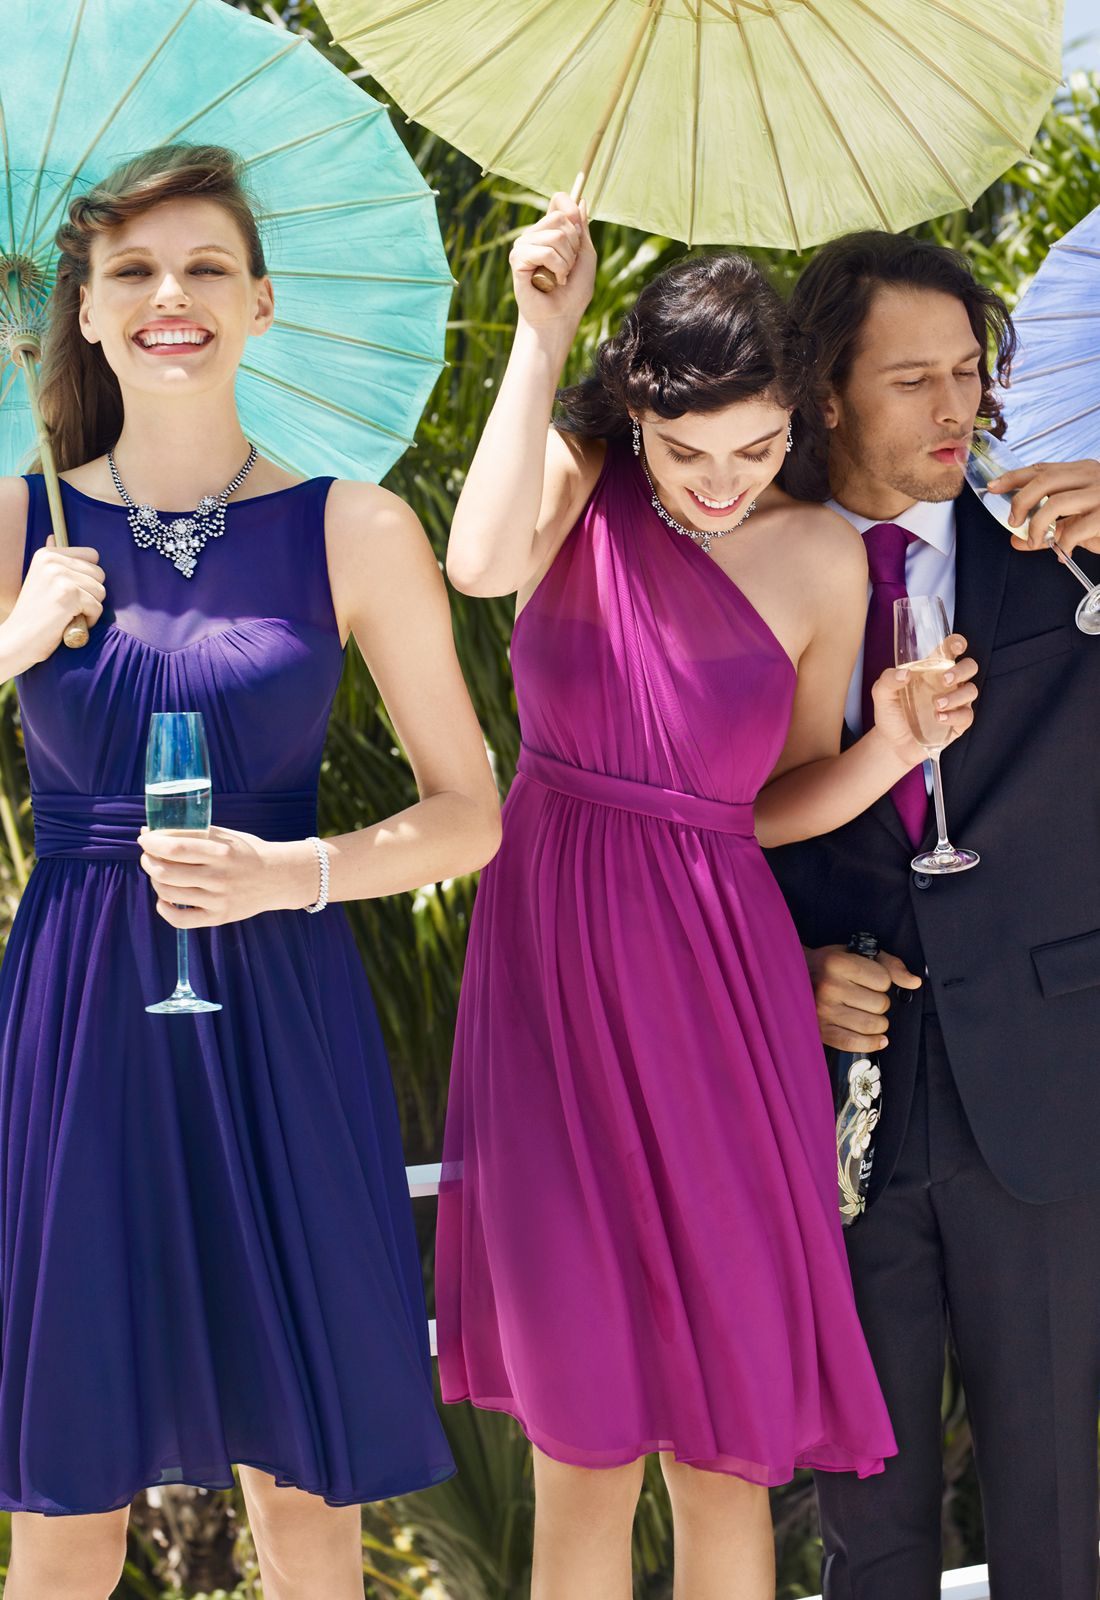 Mix and match fun hues in the same color family for your bridesmaids ...